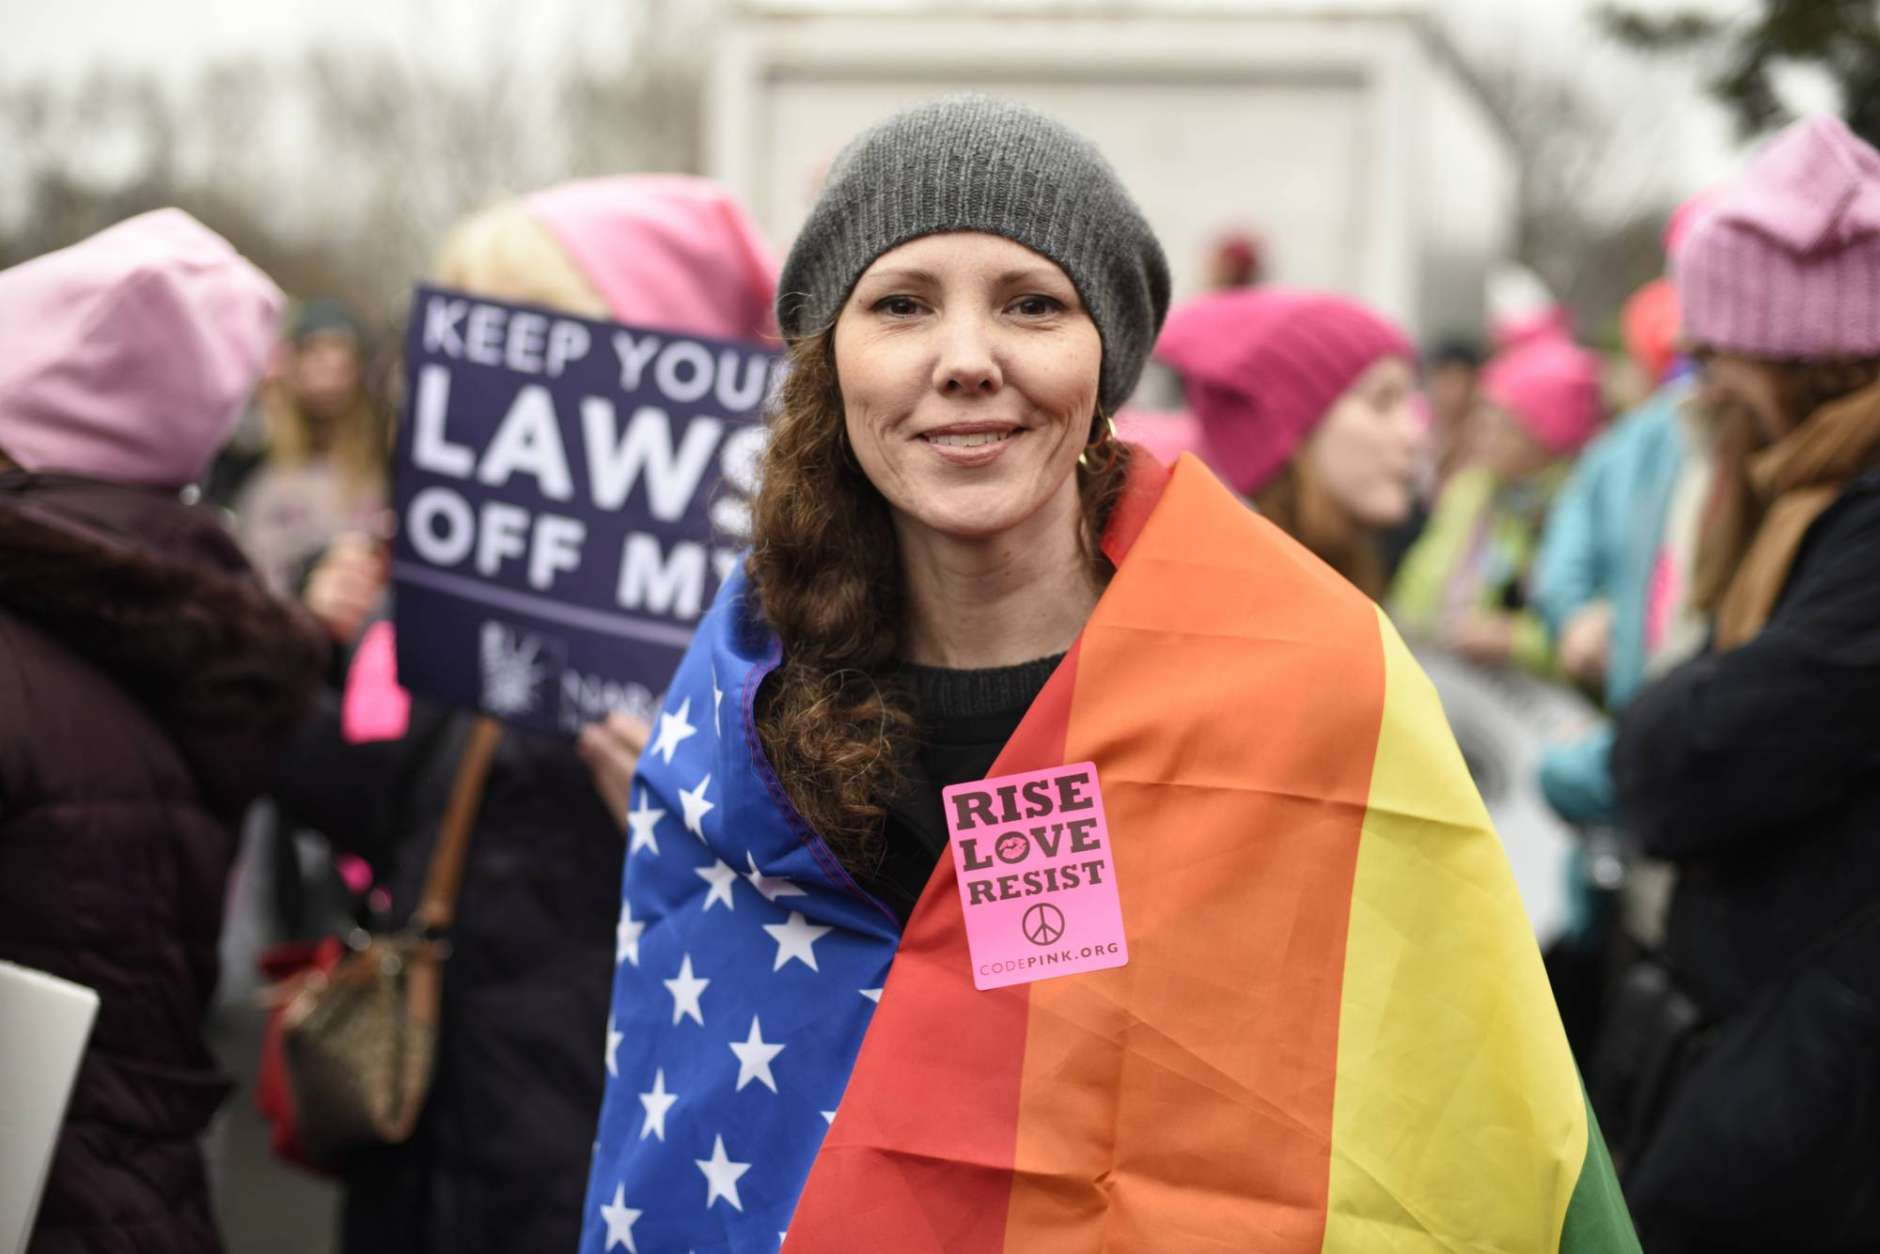 Nicole Monceaux from New York City, attends the Women's March on Washington on Saturday, Jan. 21, 2017 in Washington, on the first full day of Donald Trump's presidency.  Thousands are massing on the National Mall for the Women's March, and they're gathering, too, in spots around the world.  (AP Photo/Sait Serkan Gurbuz)